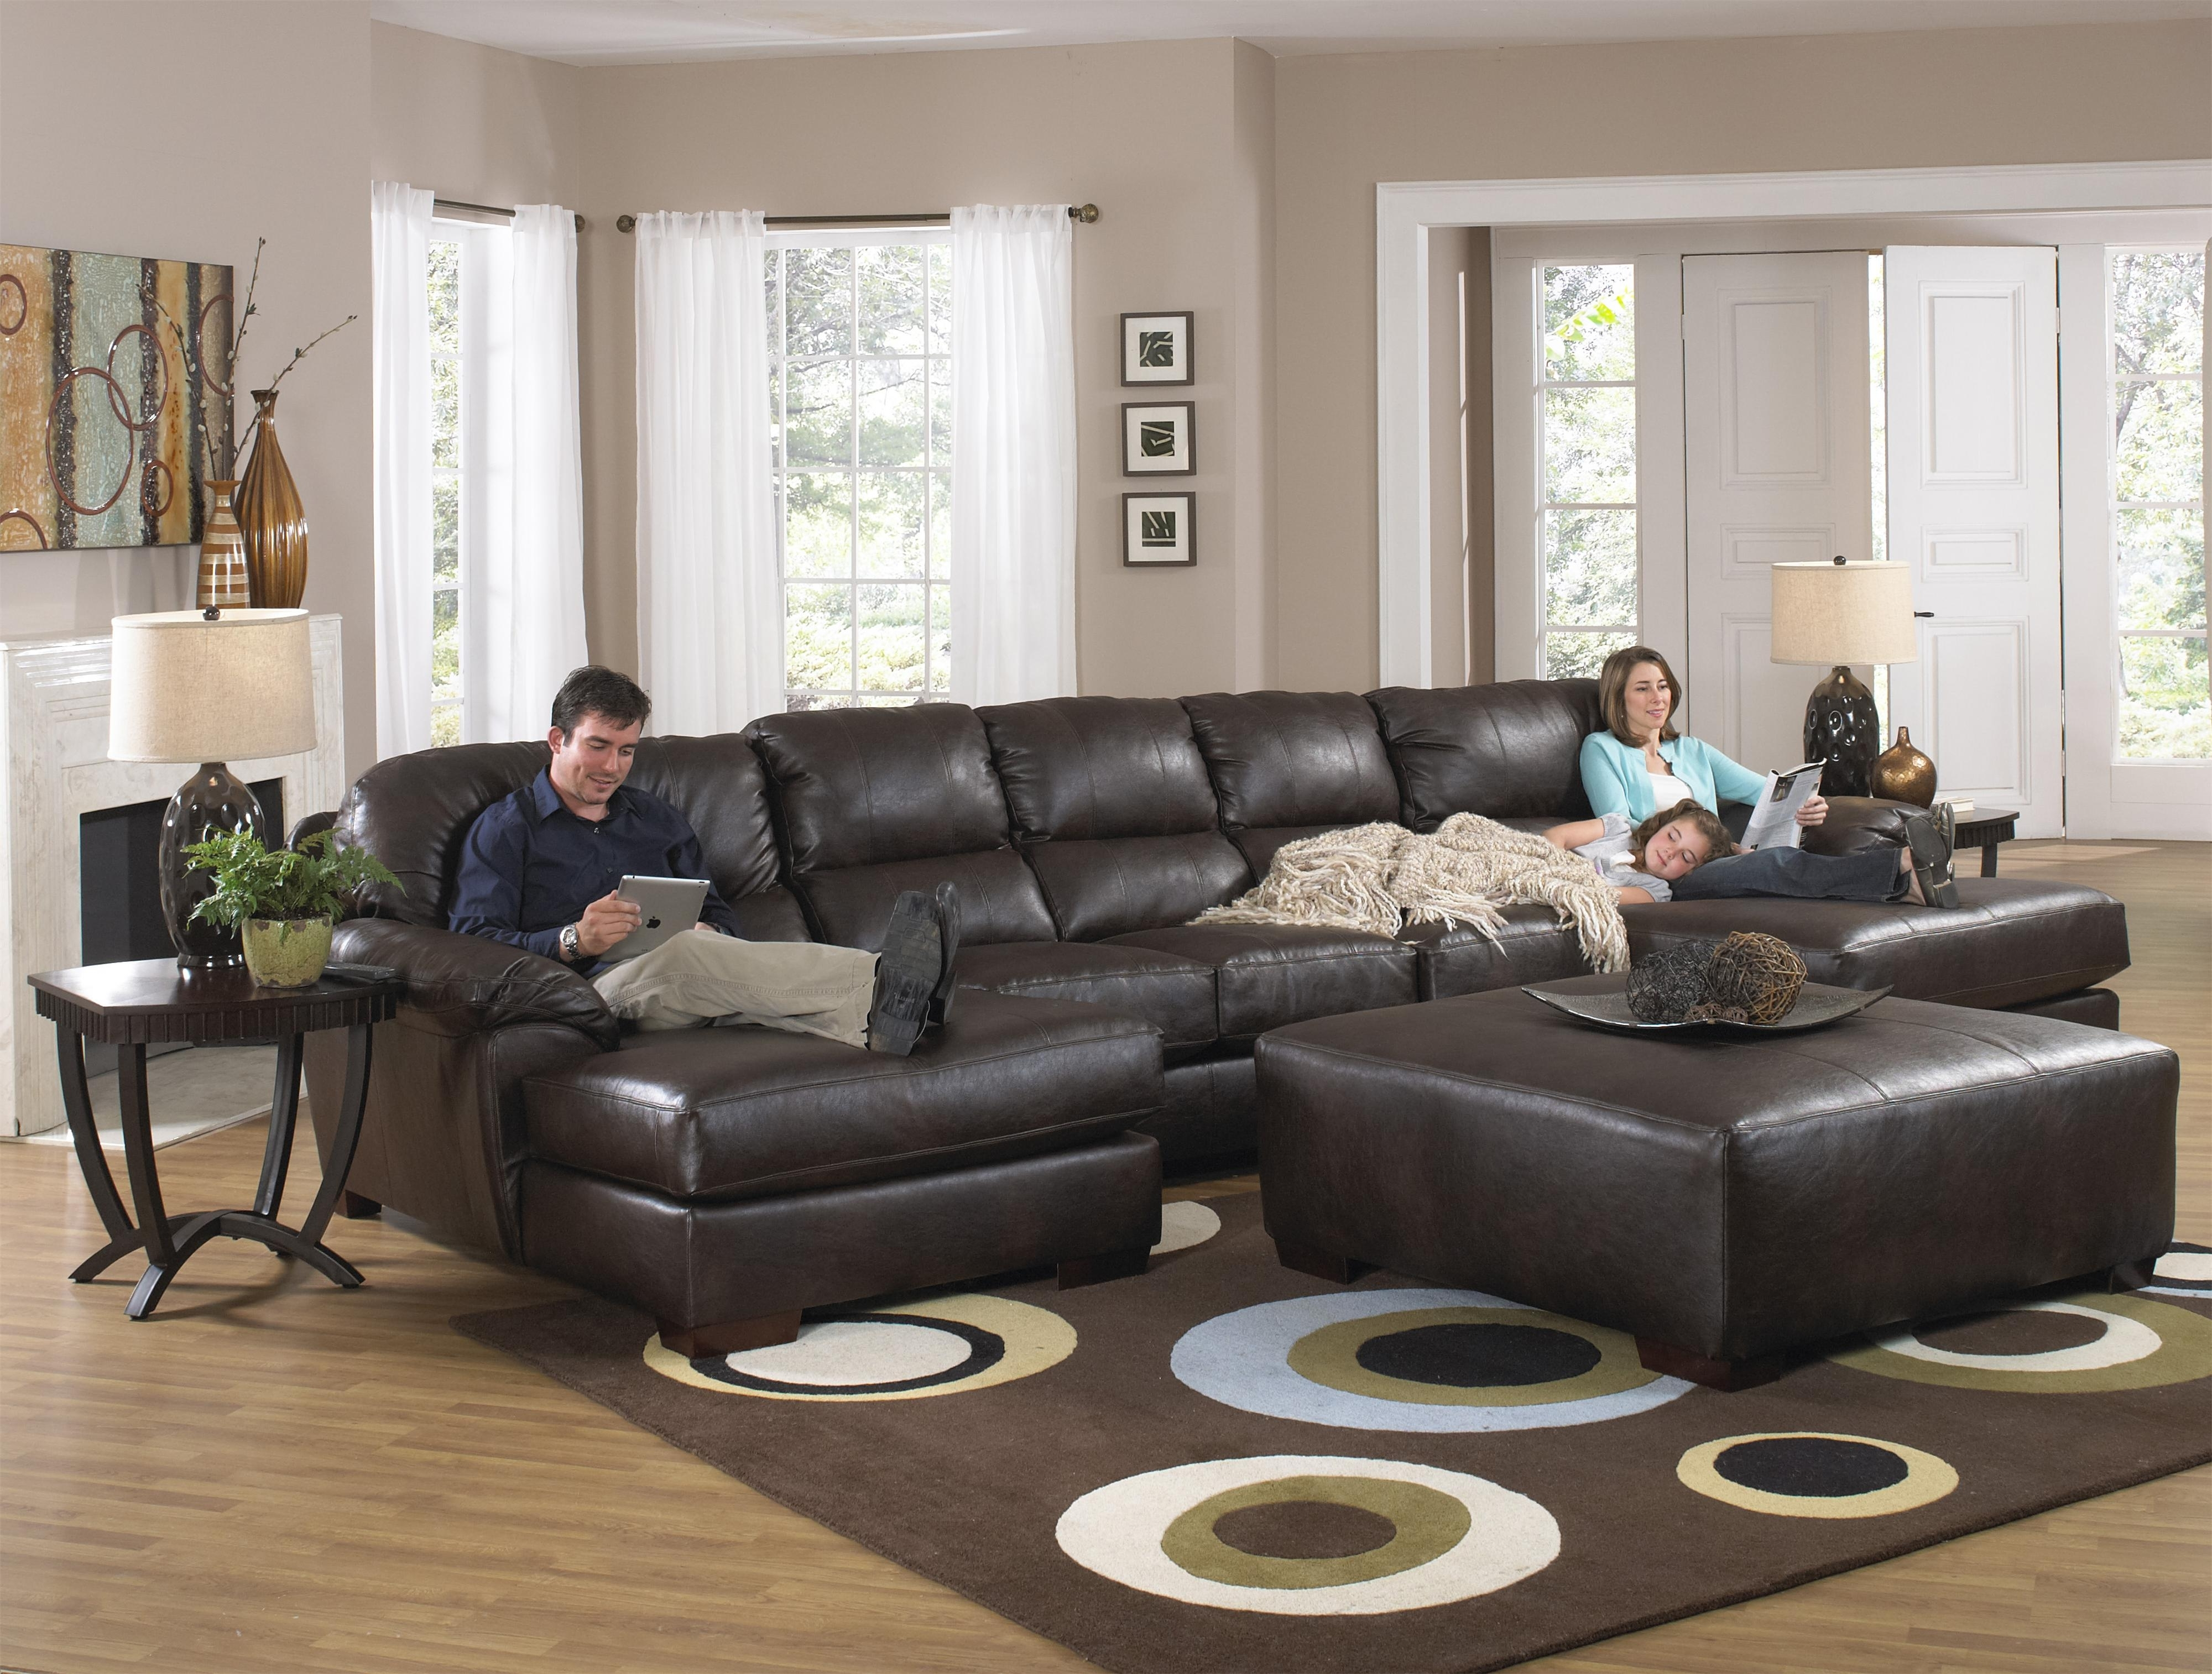 Newest Extra Deep Sectional Sofa Extra Large Sectional Sofas With Chaise Throughout Sectional Sofas With Recliners And Chaise (View 8 of 15)